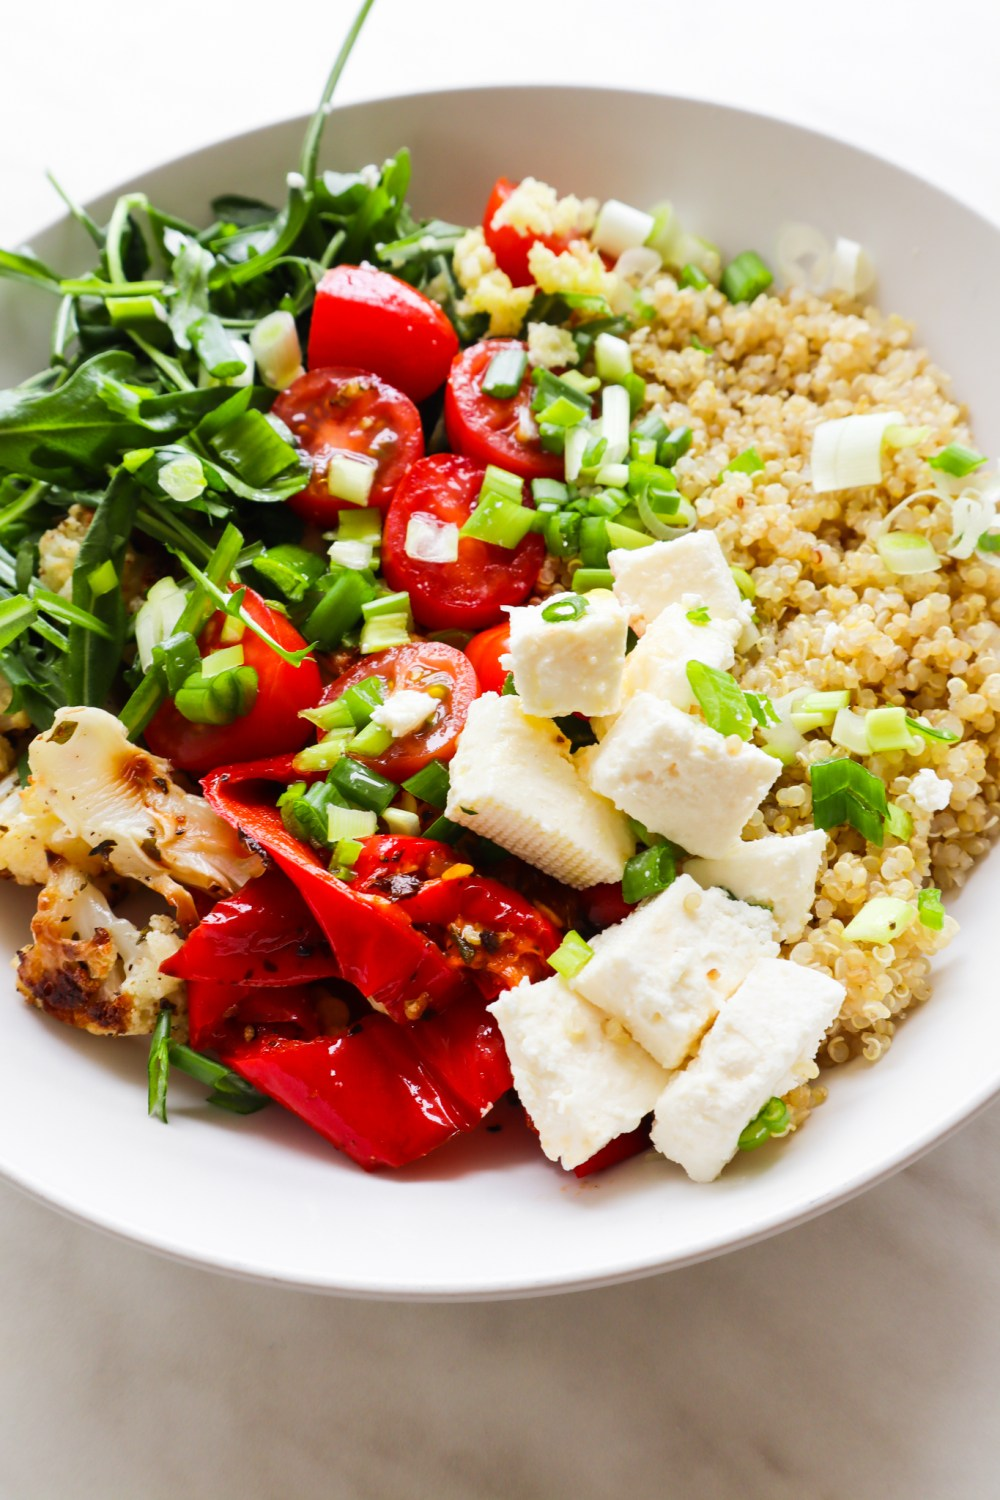 This healthy quinoa salad with feta and roasted vegetables is packed with flavor, fiber and antioxidants! The perfect summer lunch idea! Meal prep the quinoa and roasted vegetables and you can make this healthy meal in 5 minute for a quick & easy lunch!